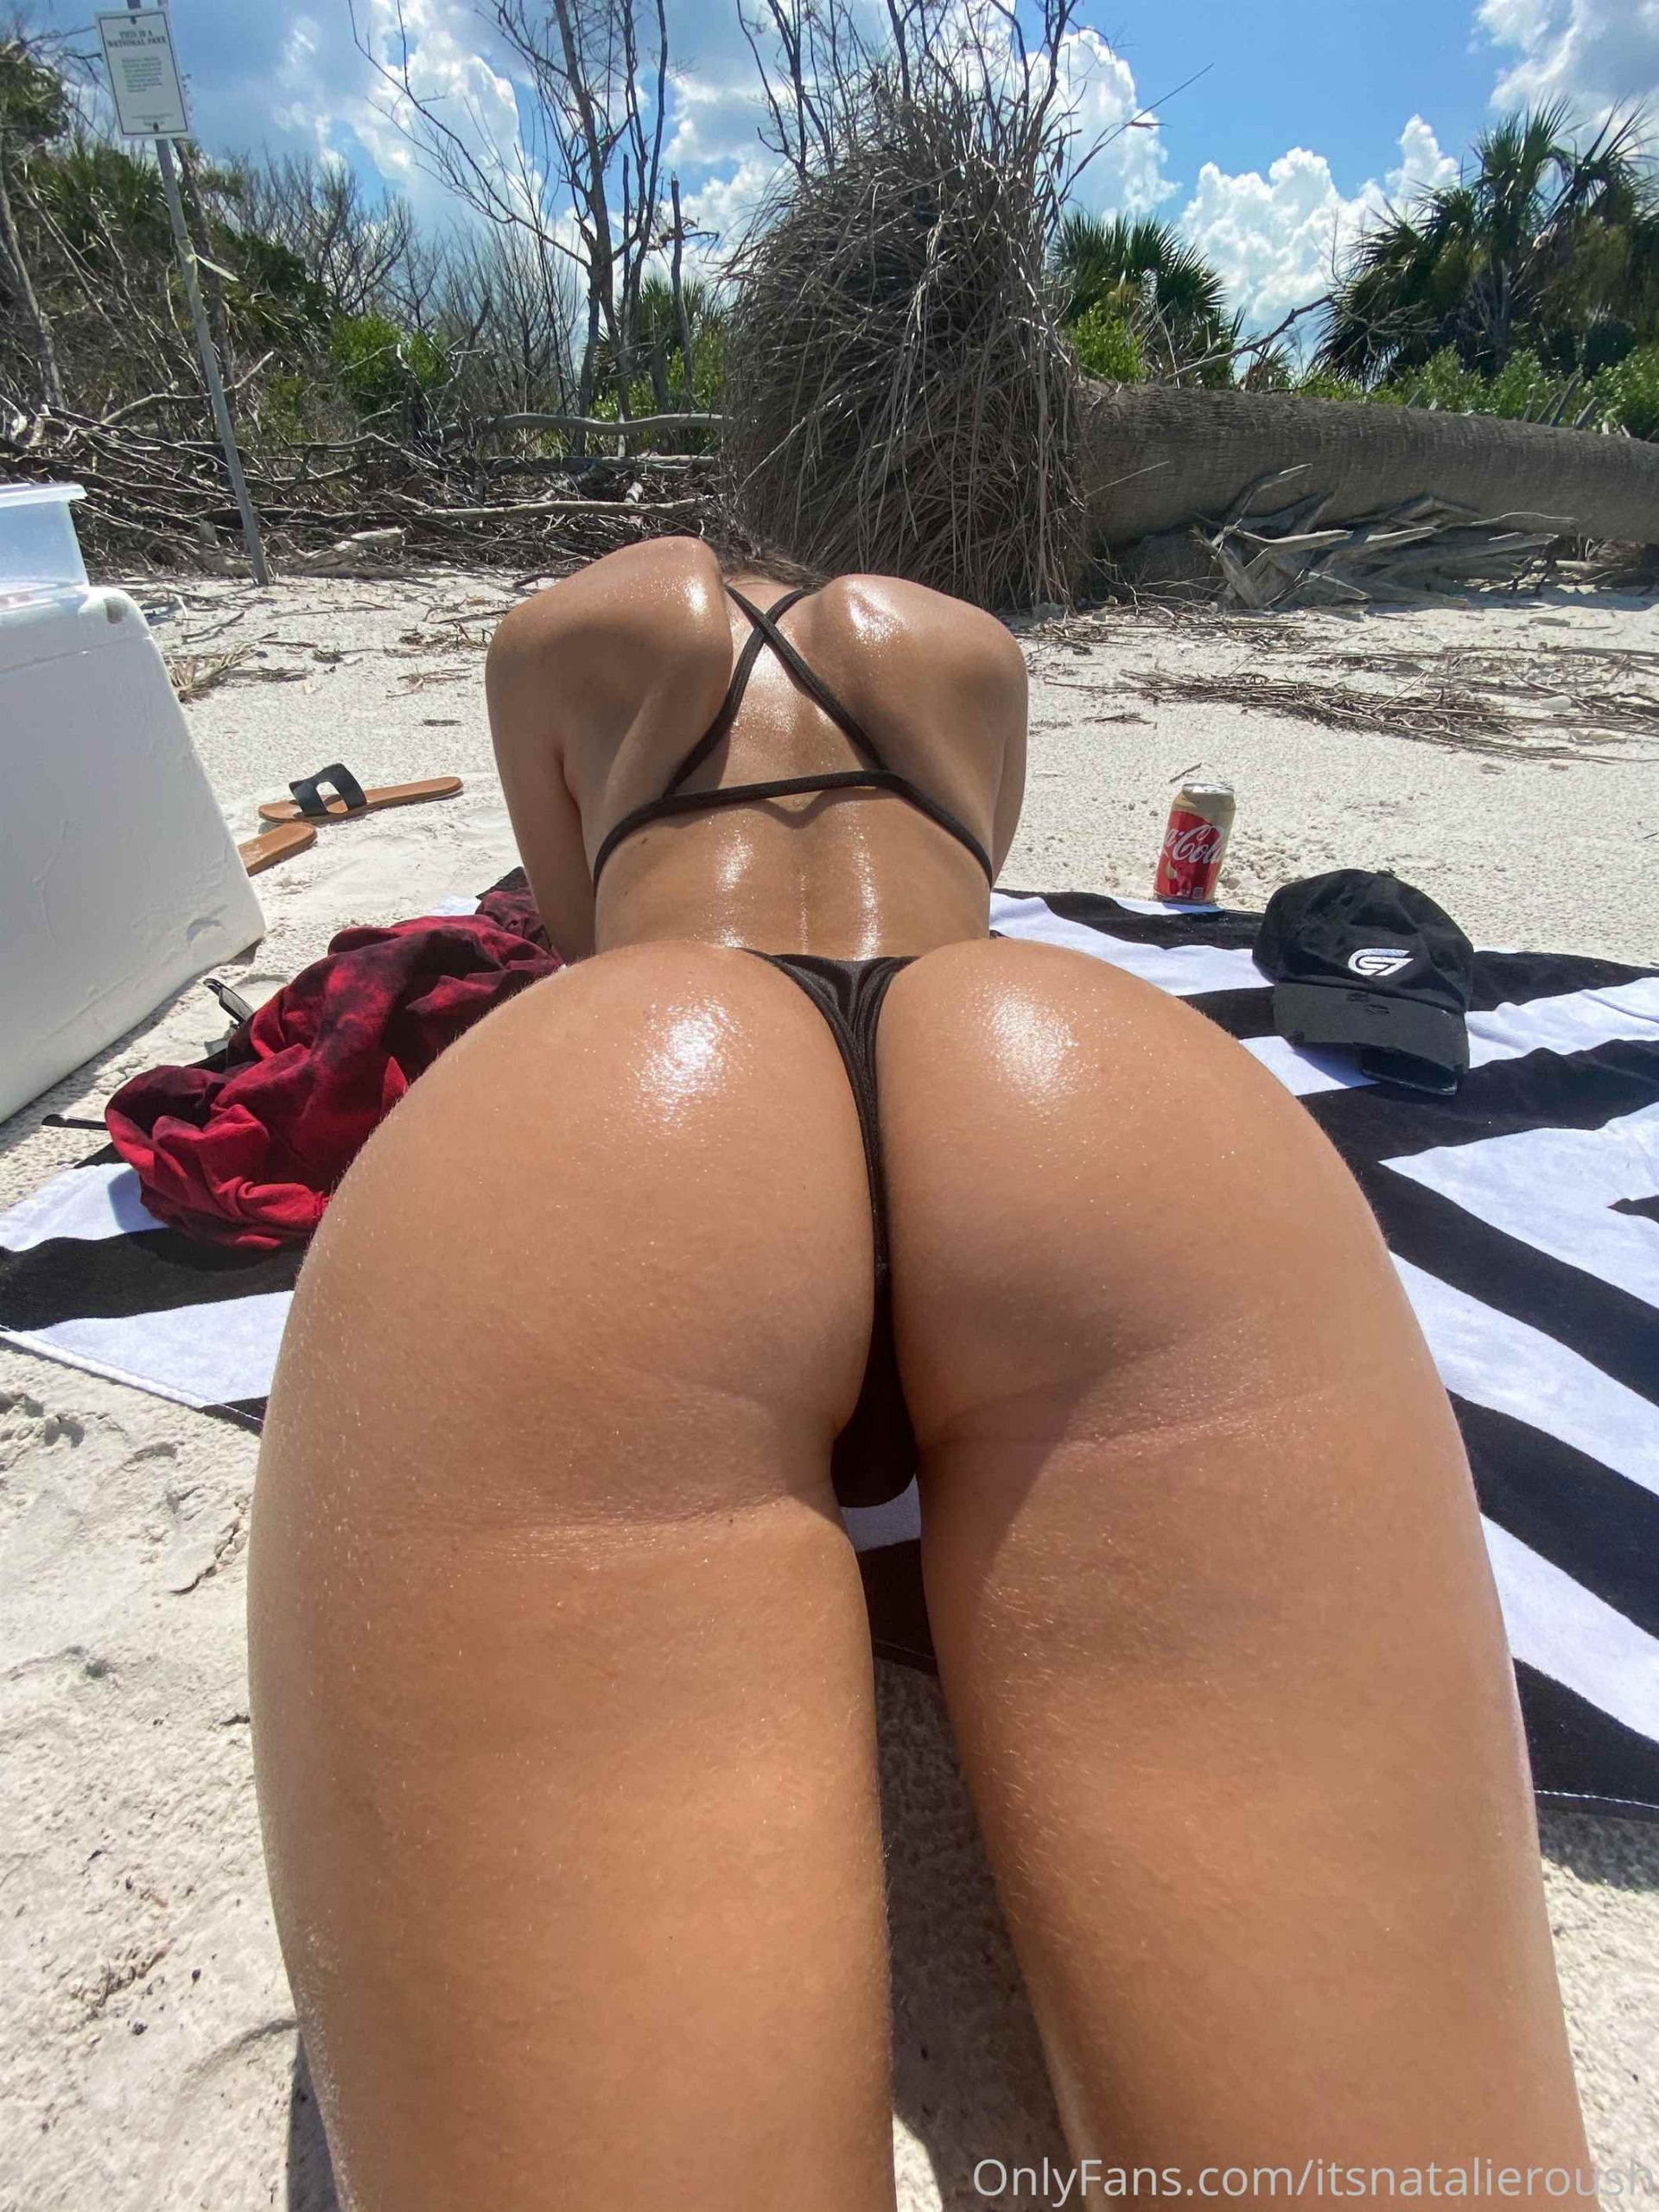 Natalie Roush Nude Leaked Onlyfans Photos 0039